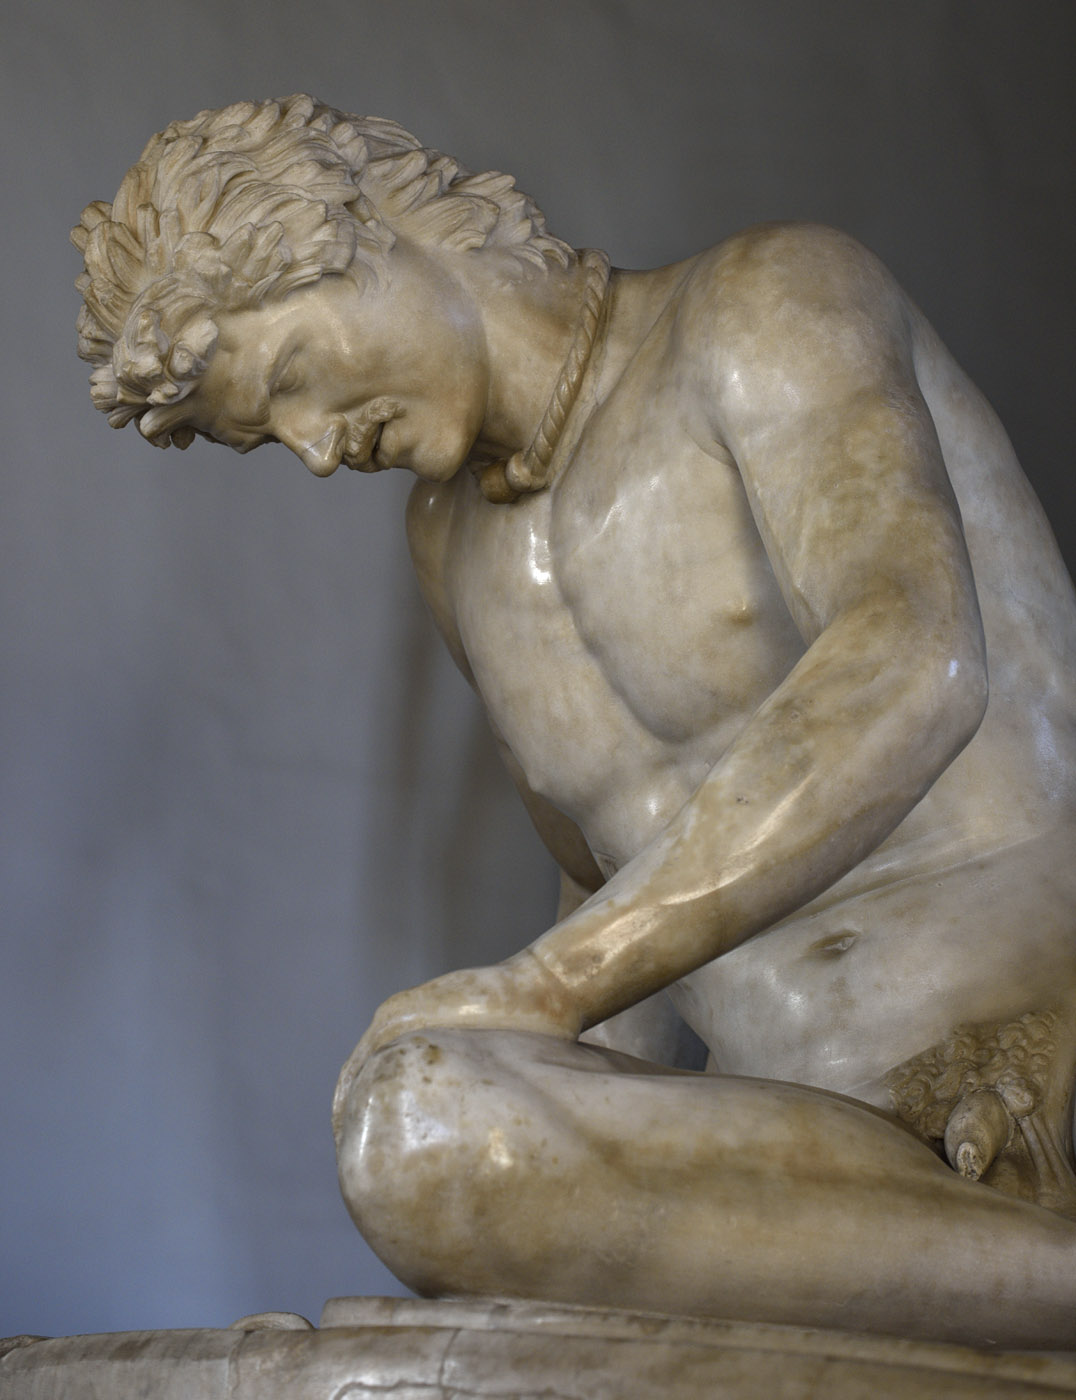 """Dying Gaul (also known as """"Galata Capitolino""""). A close-up. Marble. Roman copy of the lost Hellenistic original of the 3rd century BCE. Inv. No. MC 747. Rome, Capitoline Museums, Palazzo Nuovo, Hall of the Gaul"""